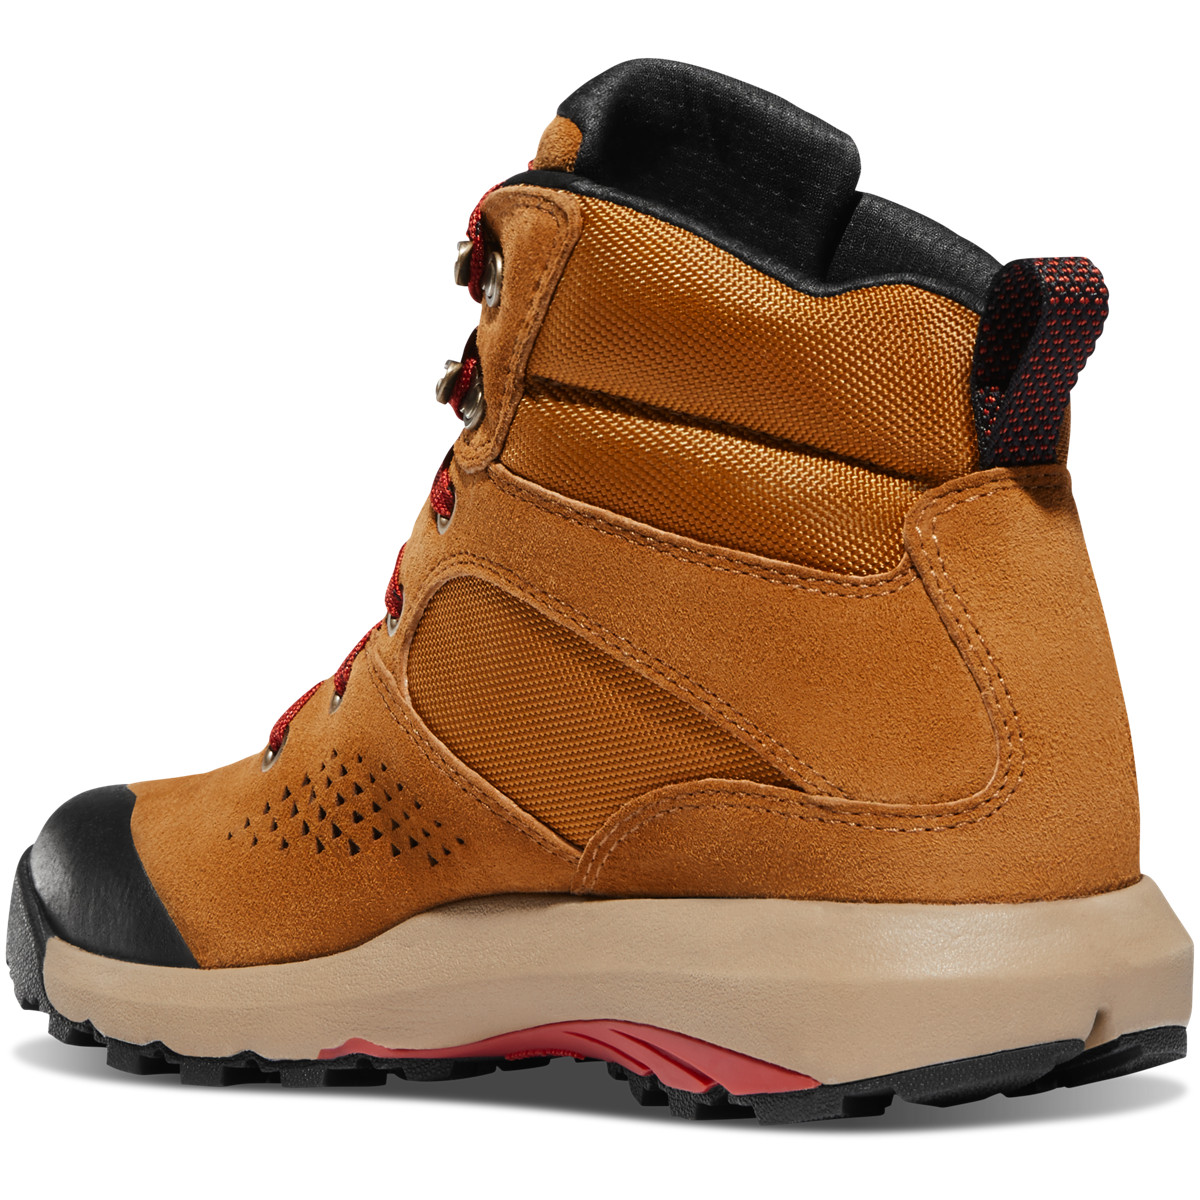 Danner Womens Inquire Mid 5 Waterproof Lifestyle Boot